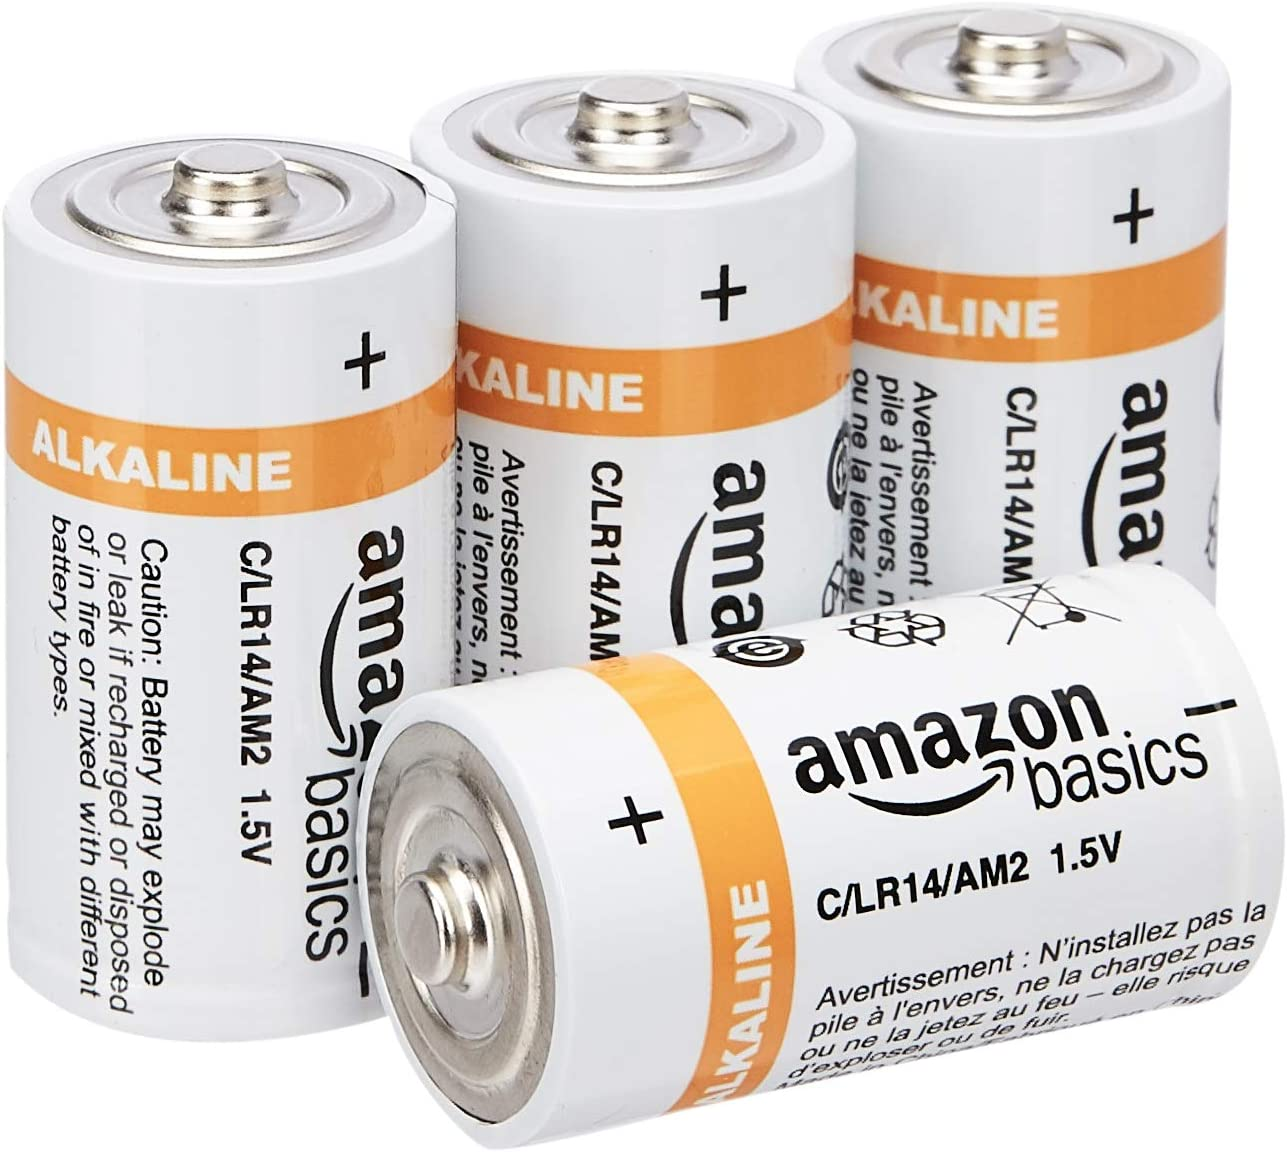 AmazonBasics C Cell Everyday 1.5 Volt Alkaline Batteries - Pack of 4